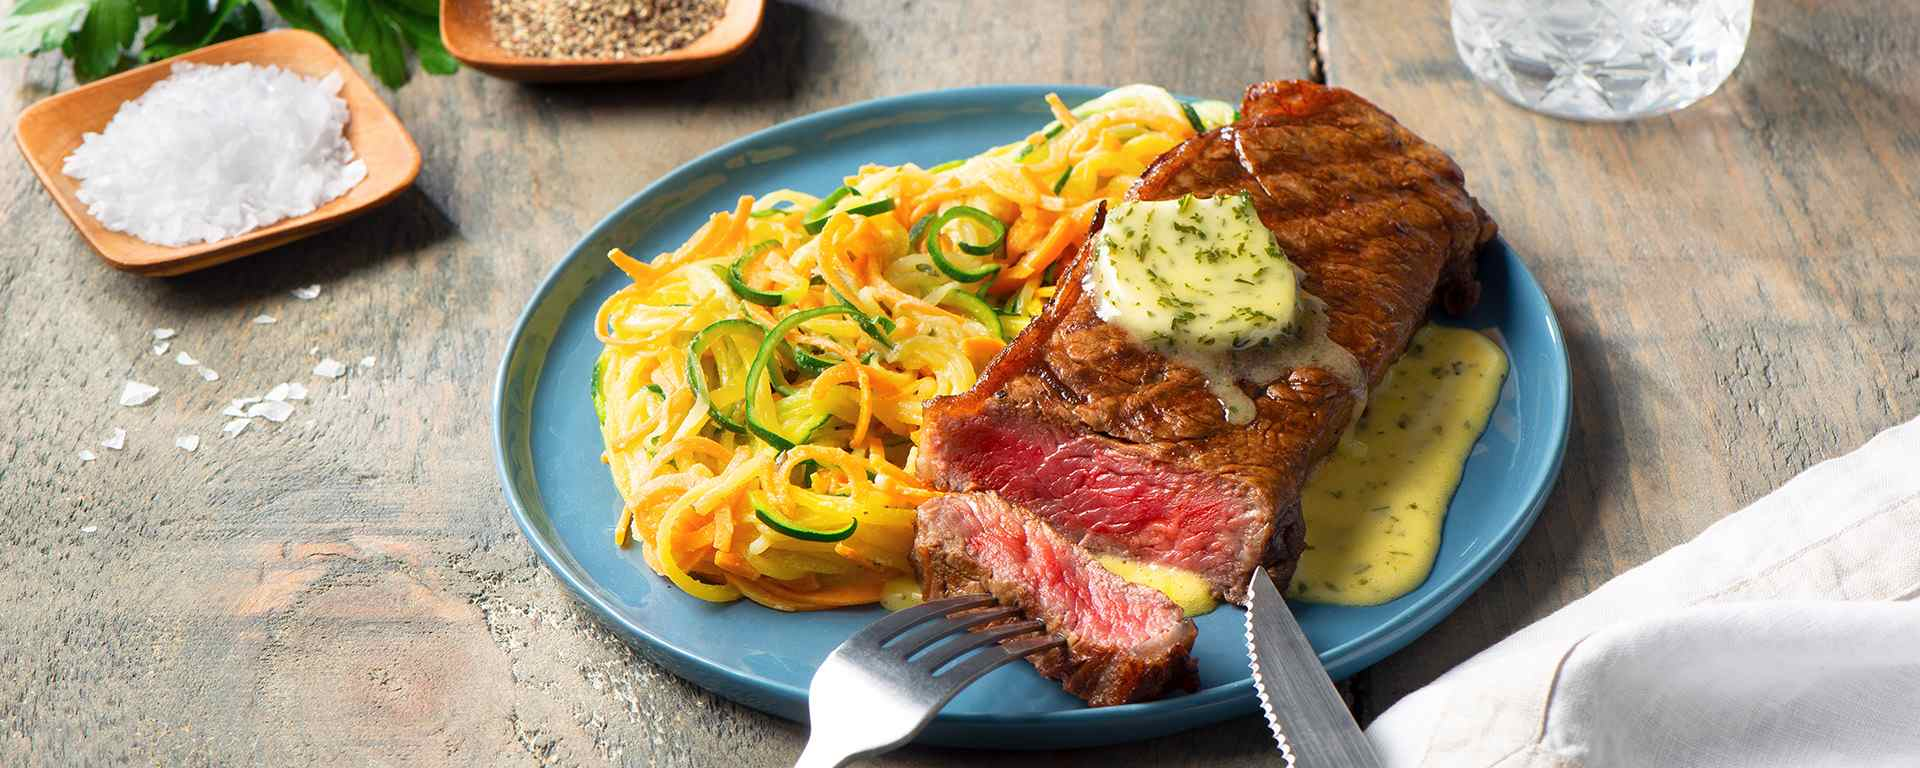 Photo for - Grilled NY Steak with Garlic Parsley Béarnaise Sauce